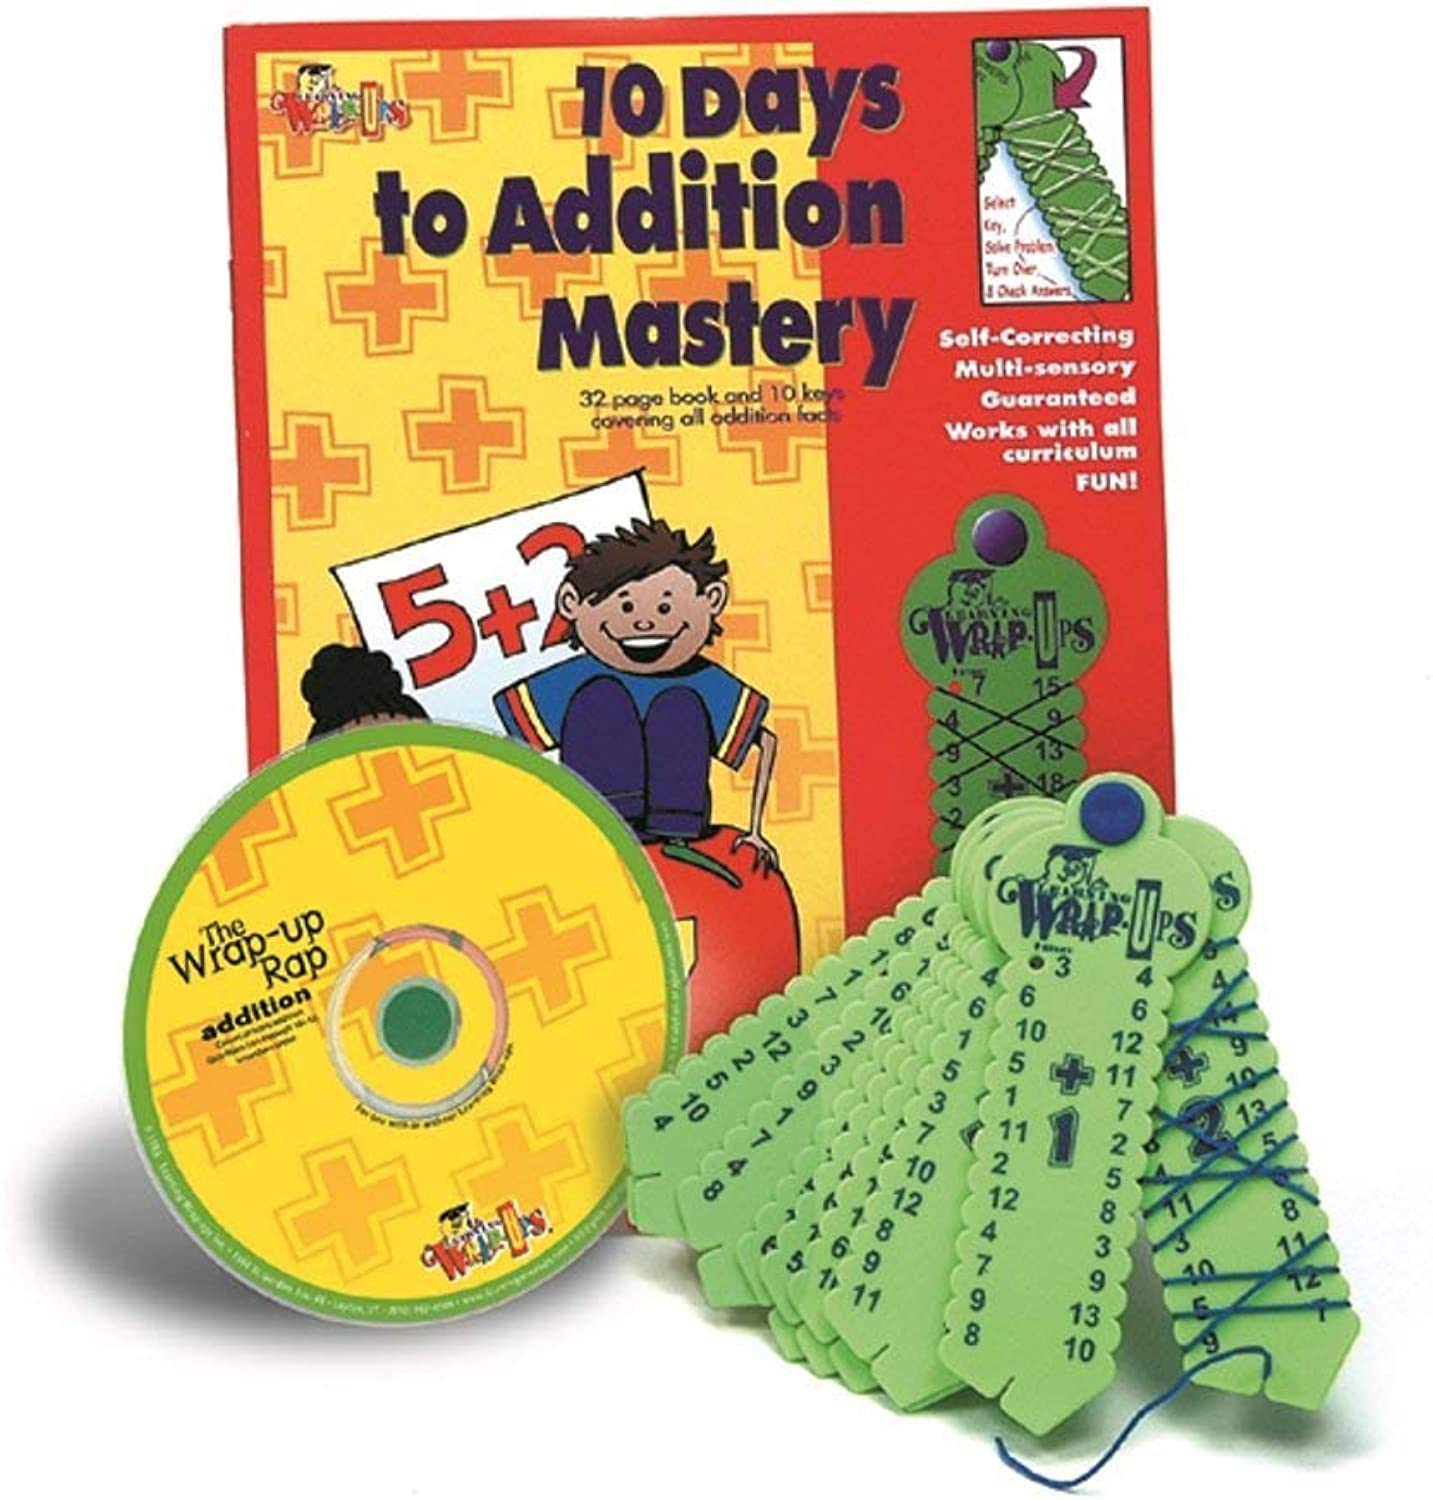 Learning Wrap-ups 10 Days to Addition Mastery Kit with CD by Learning Wrap-Ups B000S6OGA6  | Verkauf Online-Shop